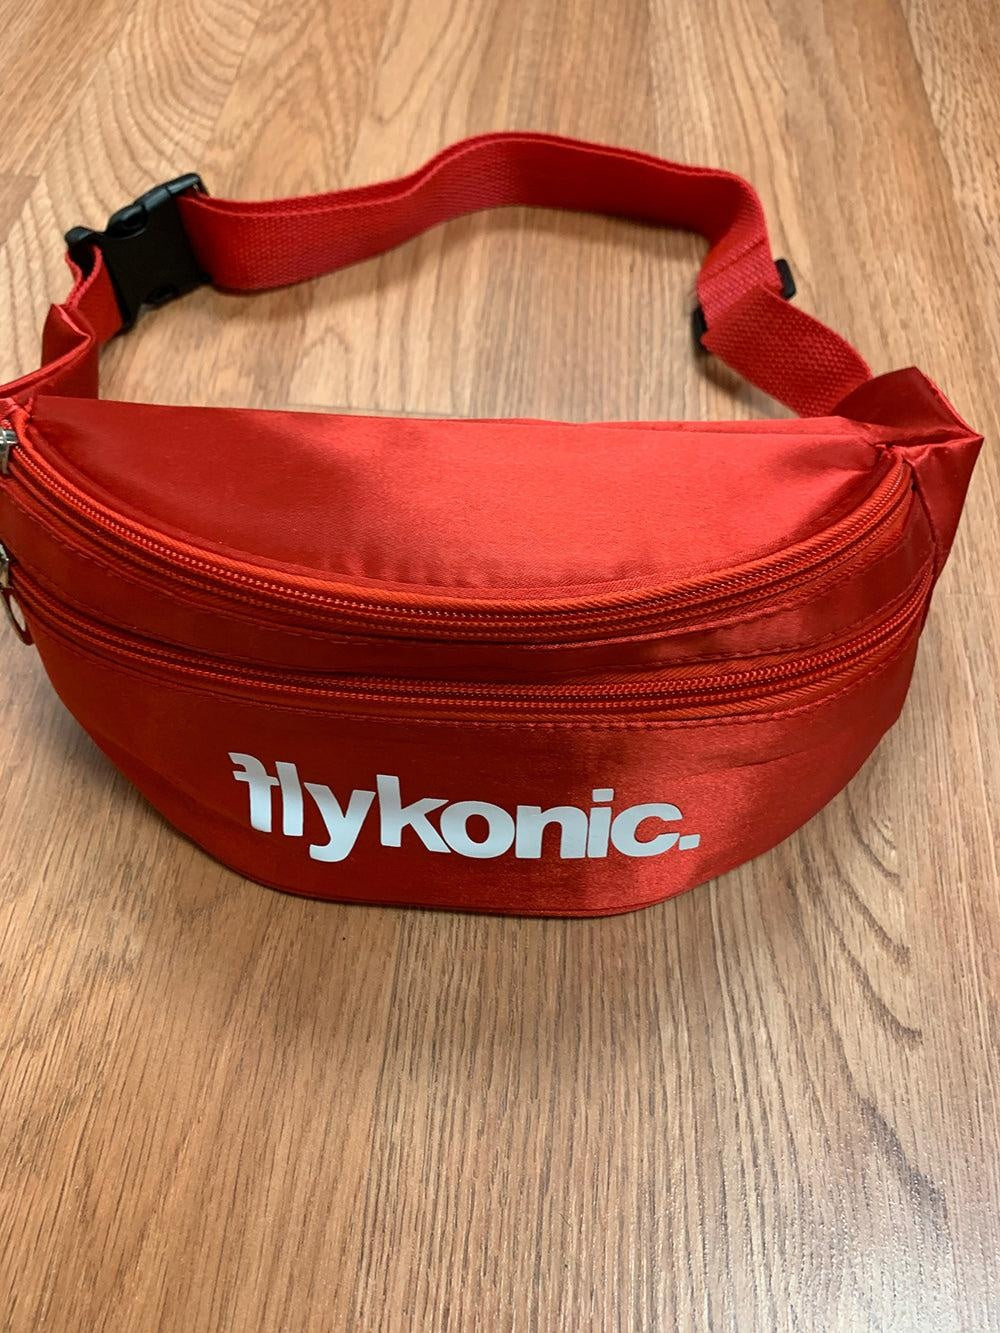 Flykonic Fanny Pack in Red with white logo